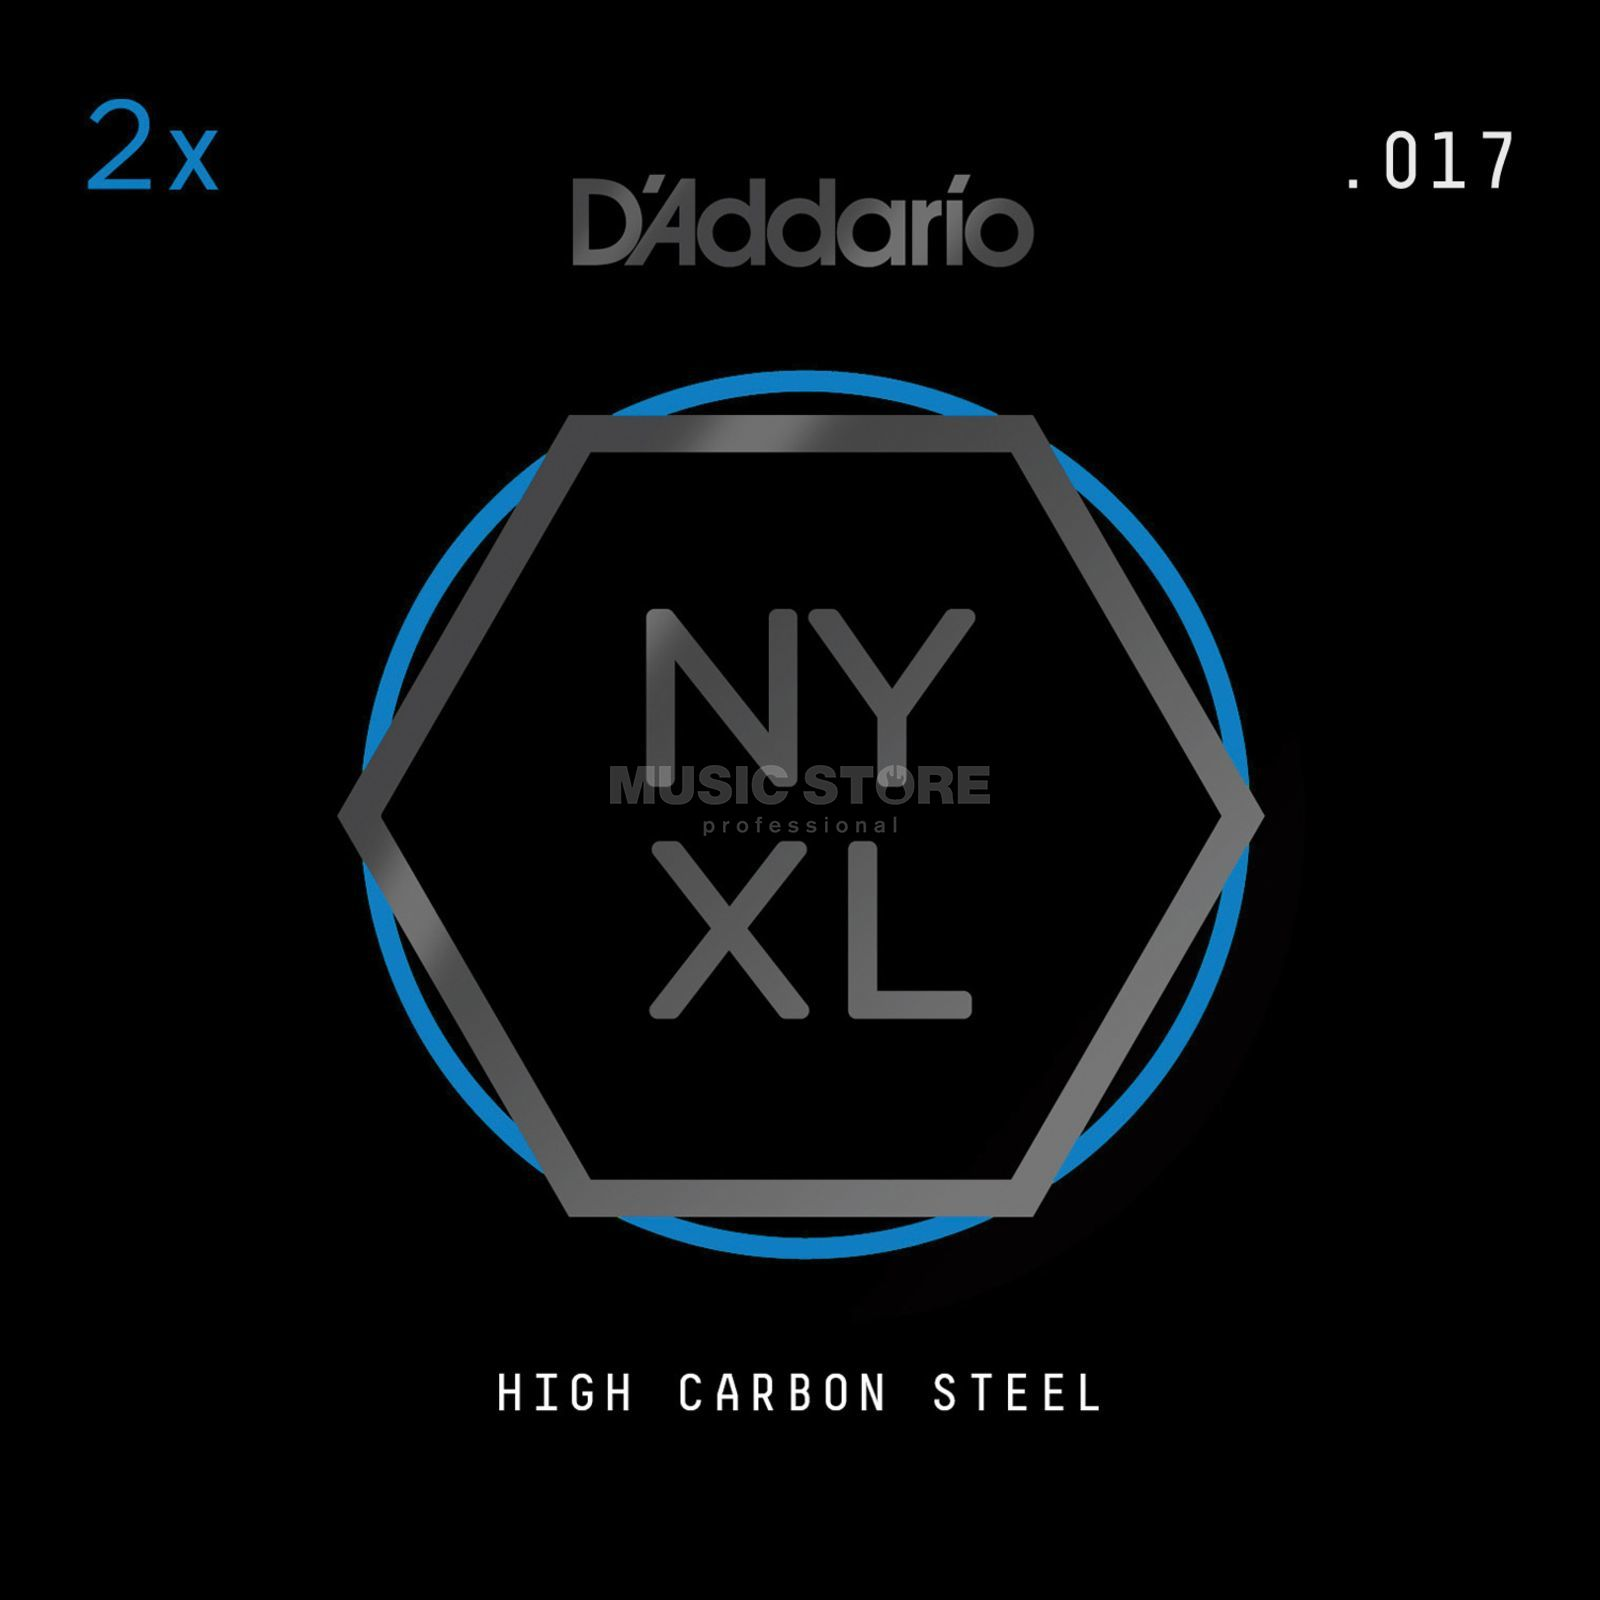 D'Addario NYPL017 Plain Single String 2-Pack - High Carbon Steel Product Image